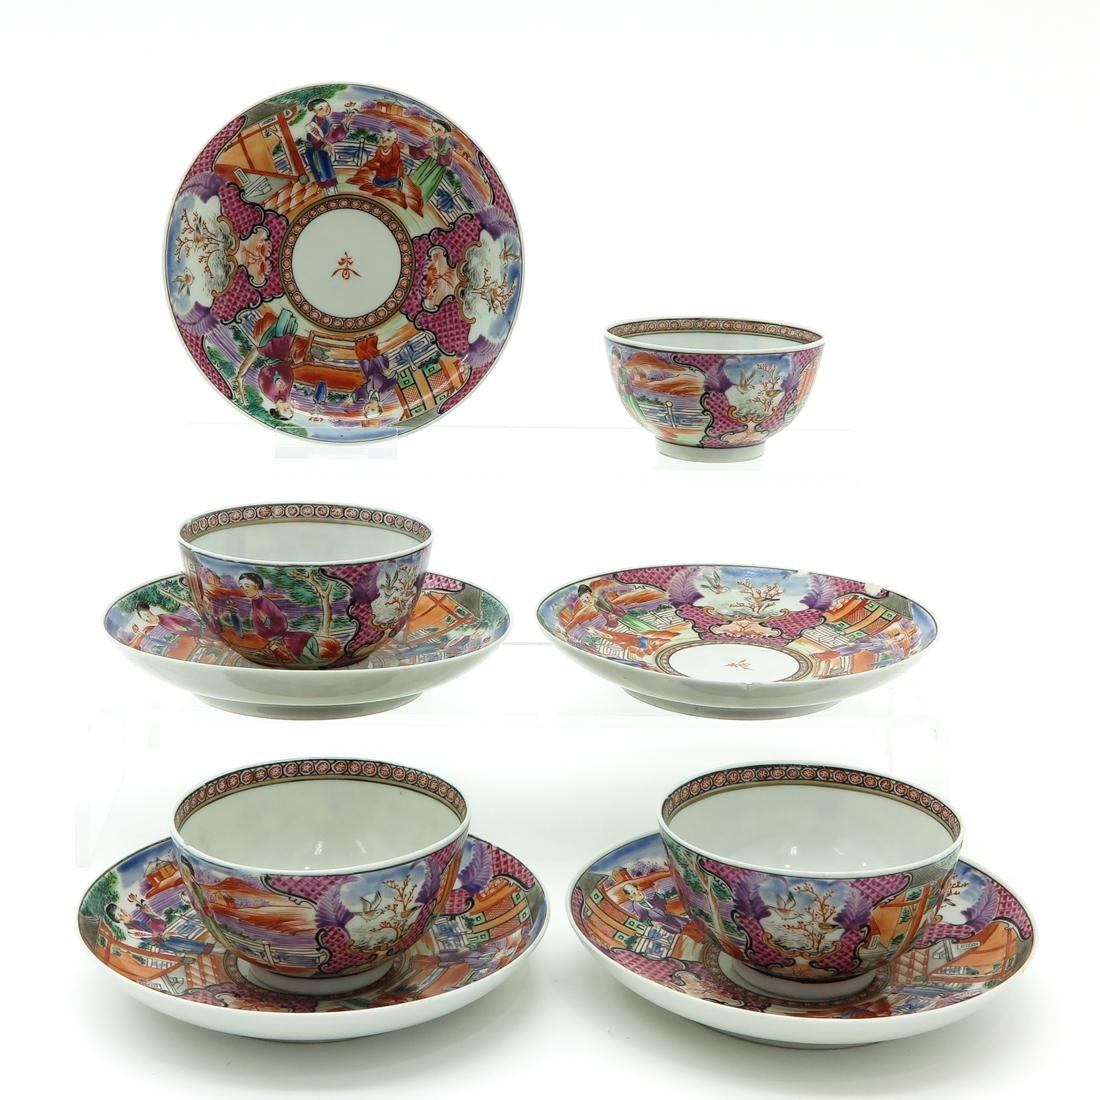 Lot of Cups and Saucers - 4